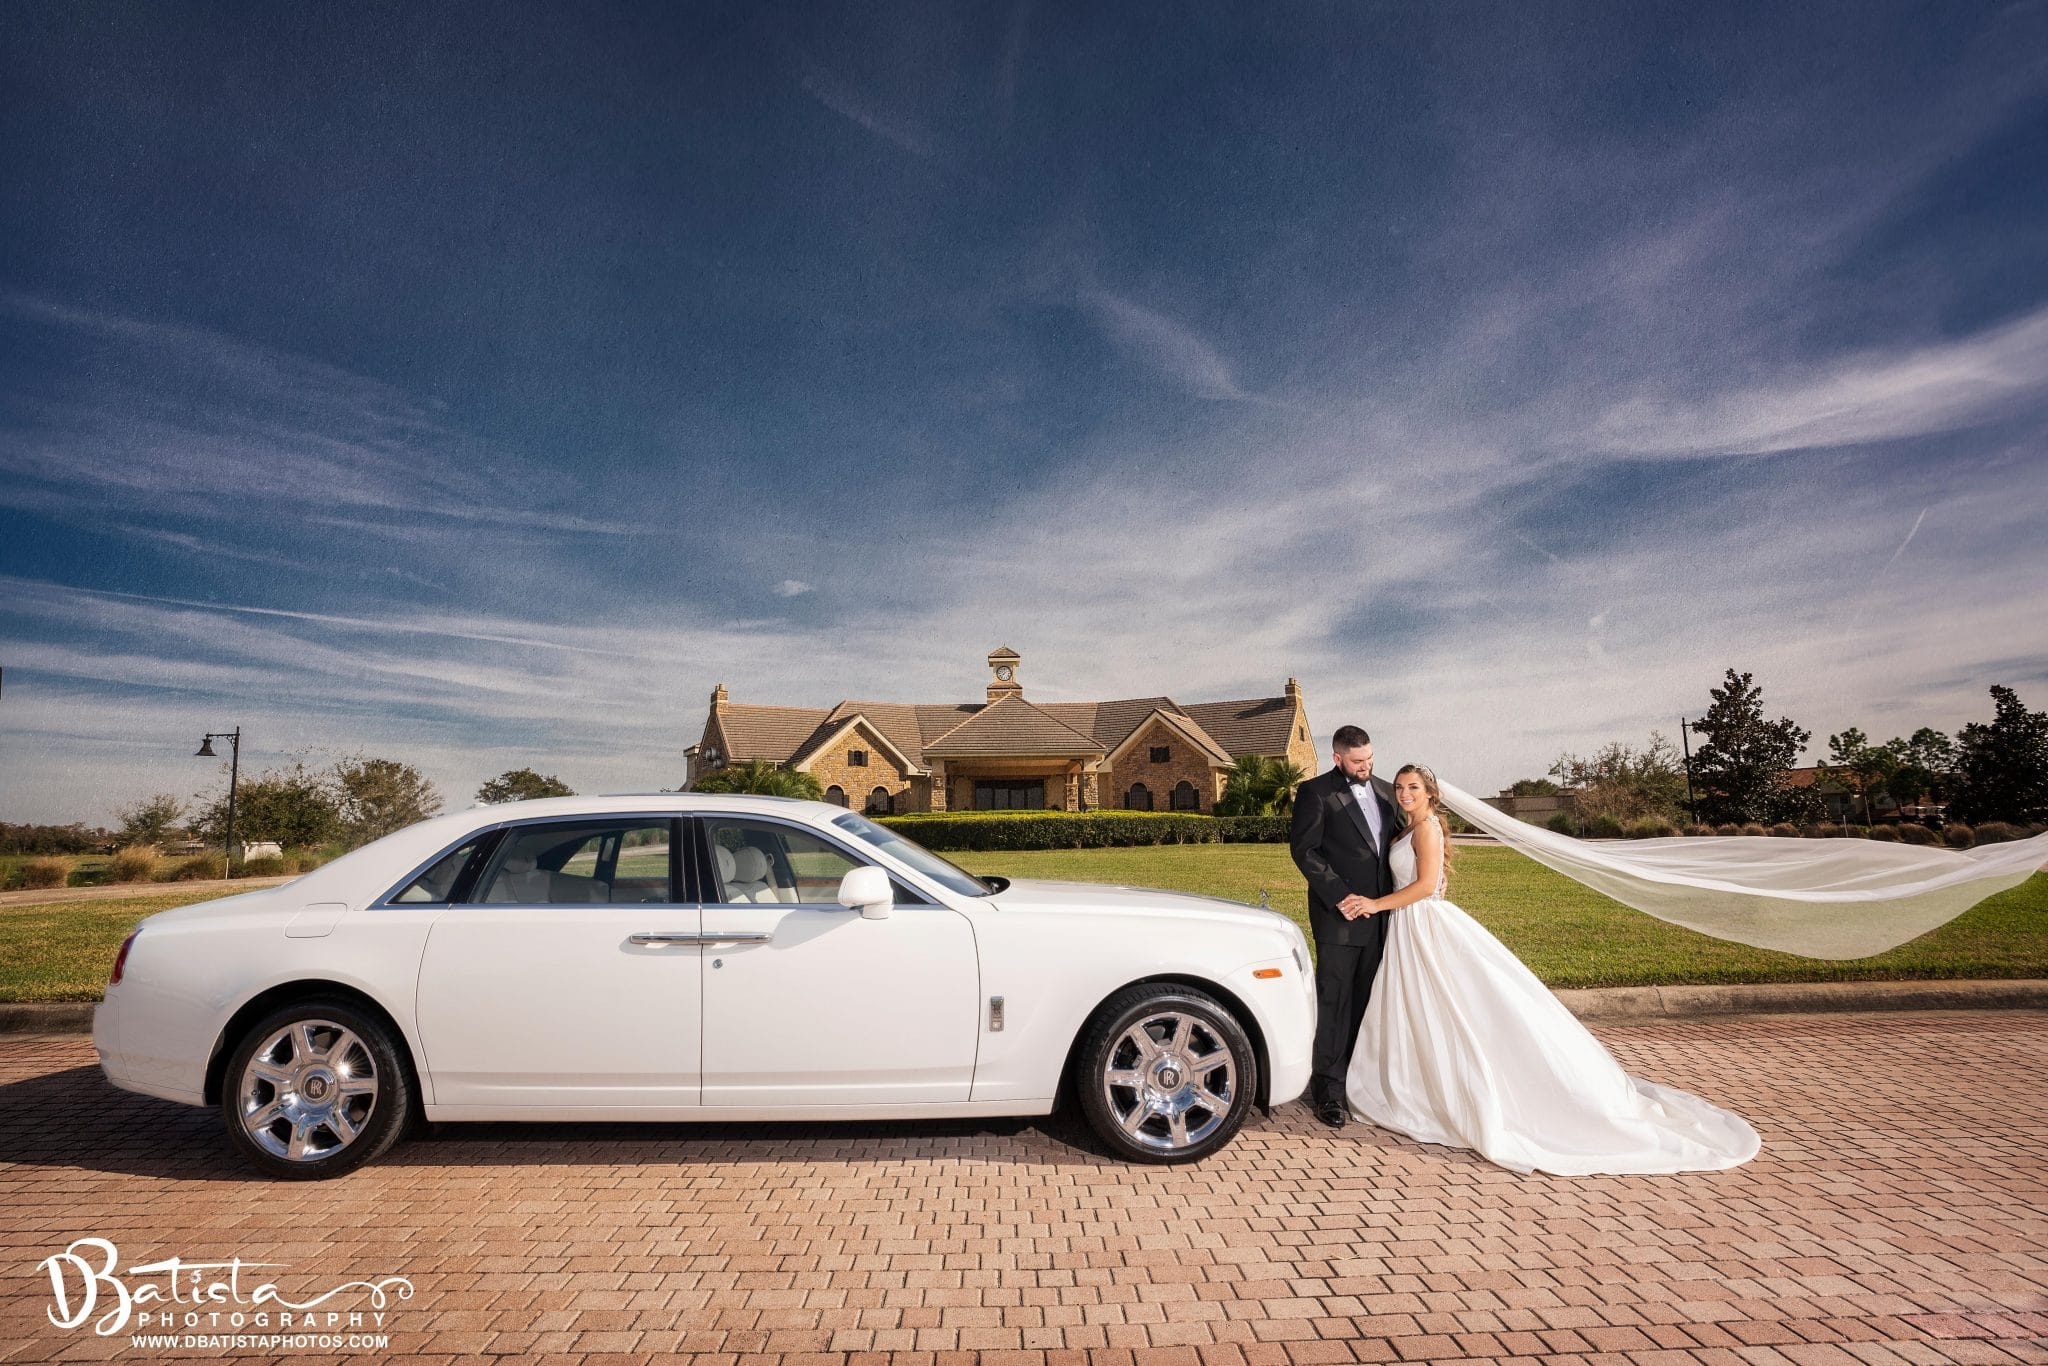 Exotic Limo - bride and groom next to beautiful white car